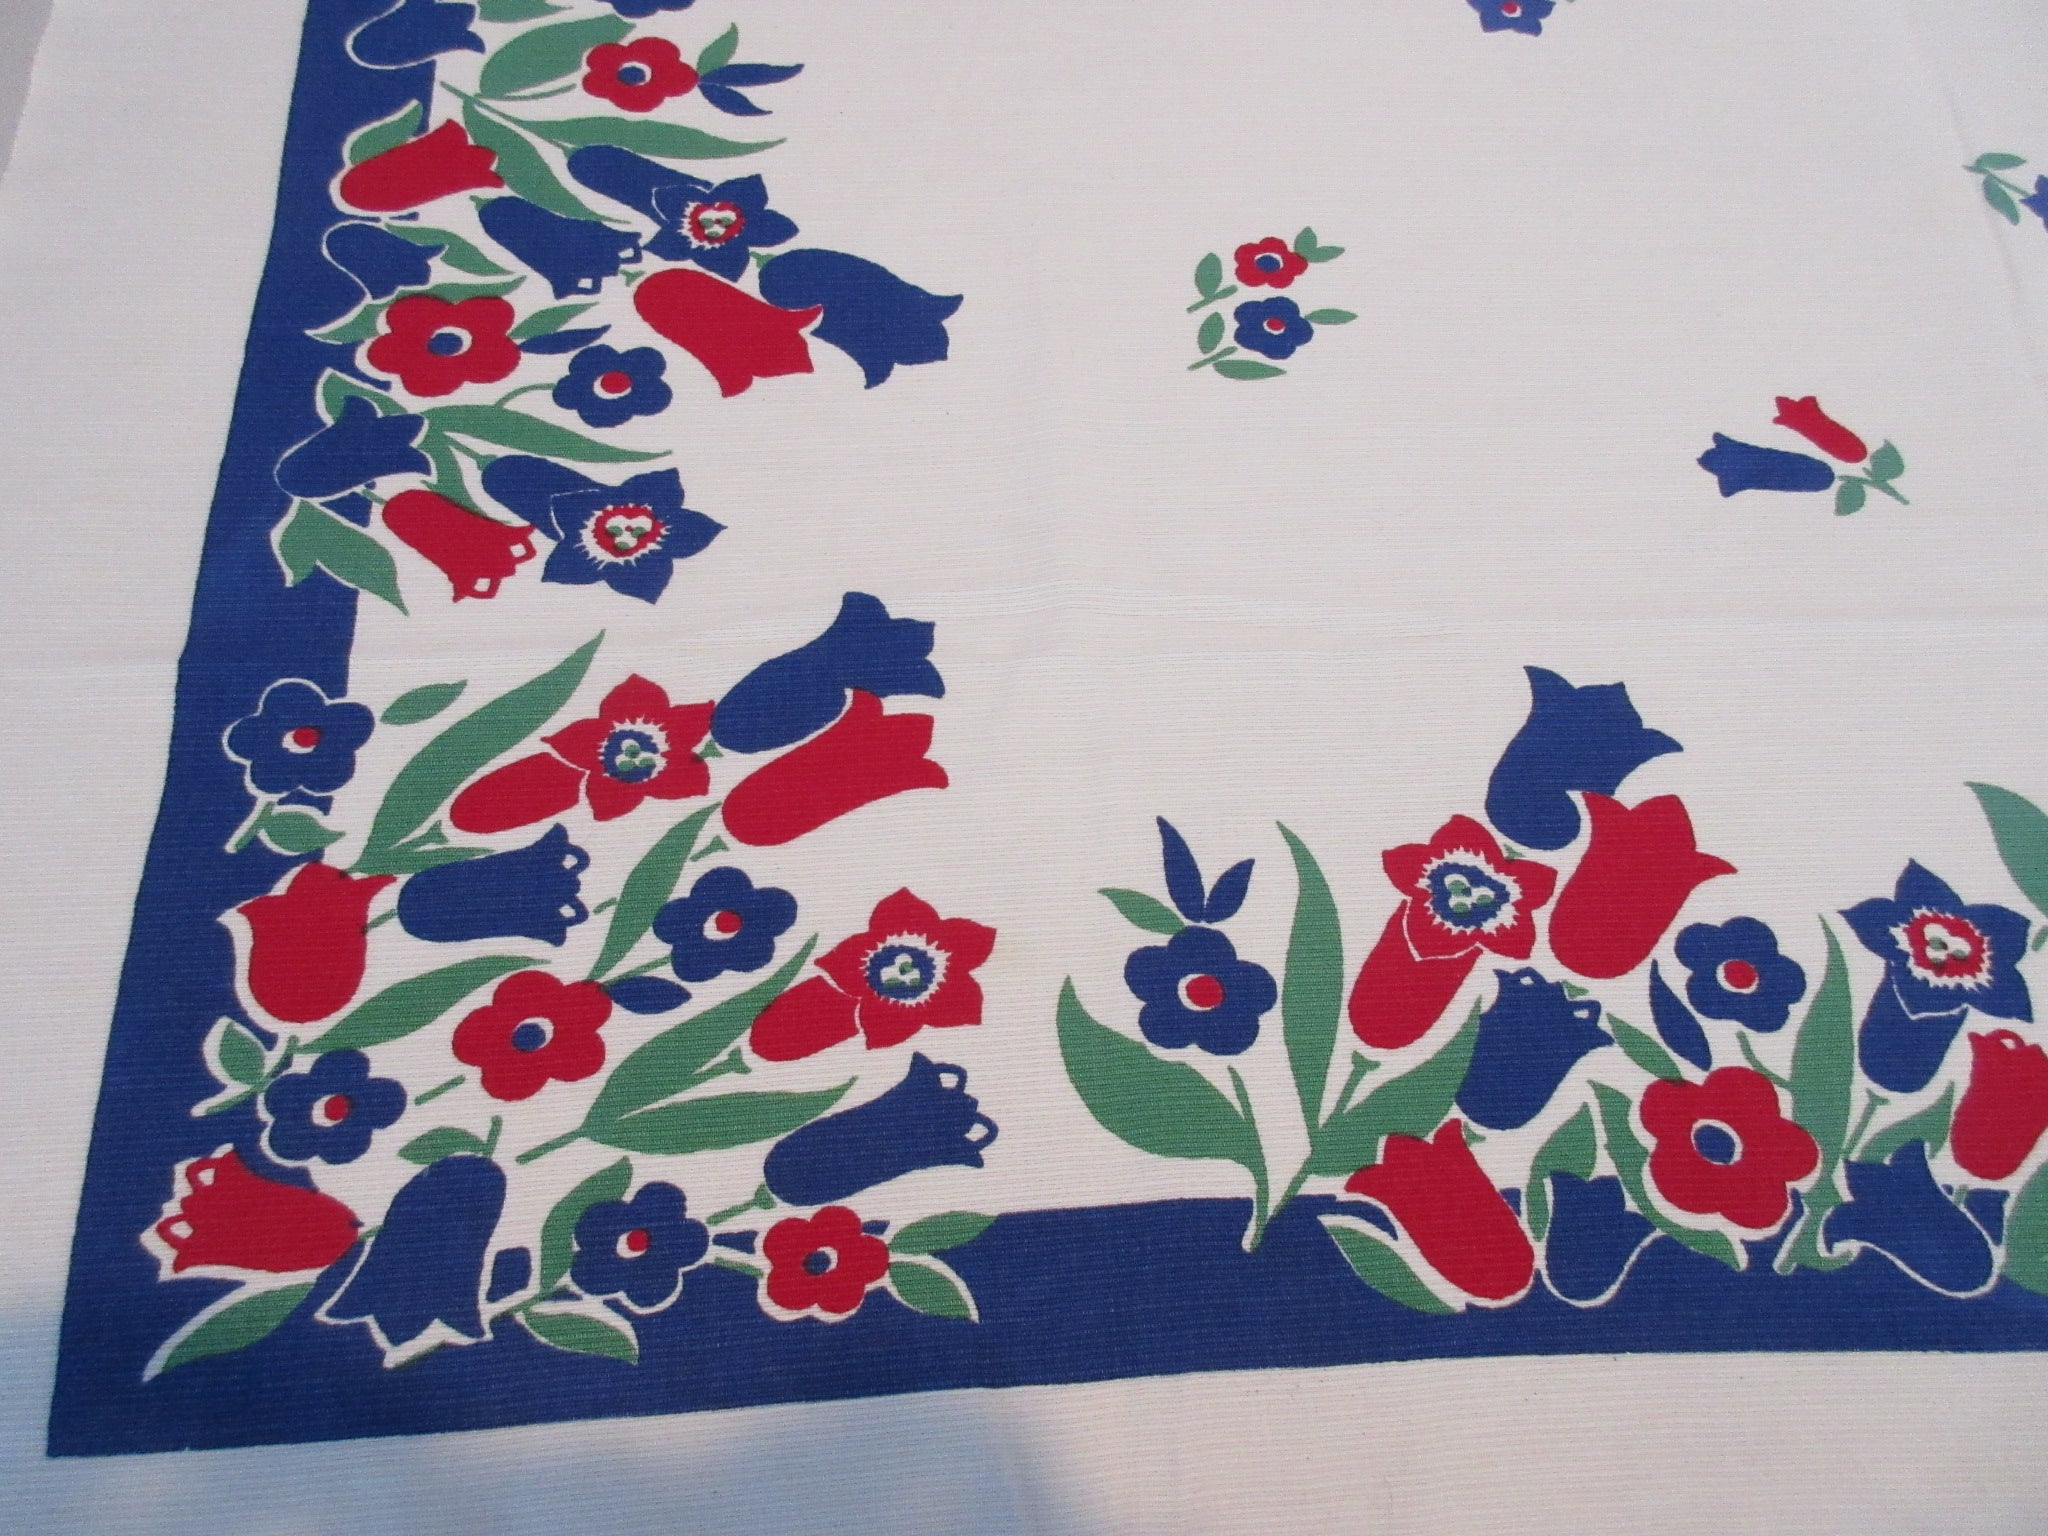 Primary Tulips Posies Red Blue Green Floral Vintage Printed Tablecloth (50 X 46)